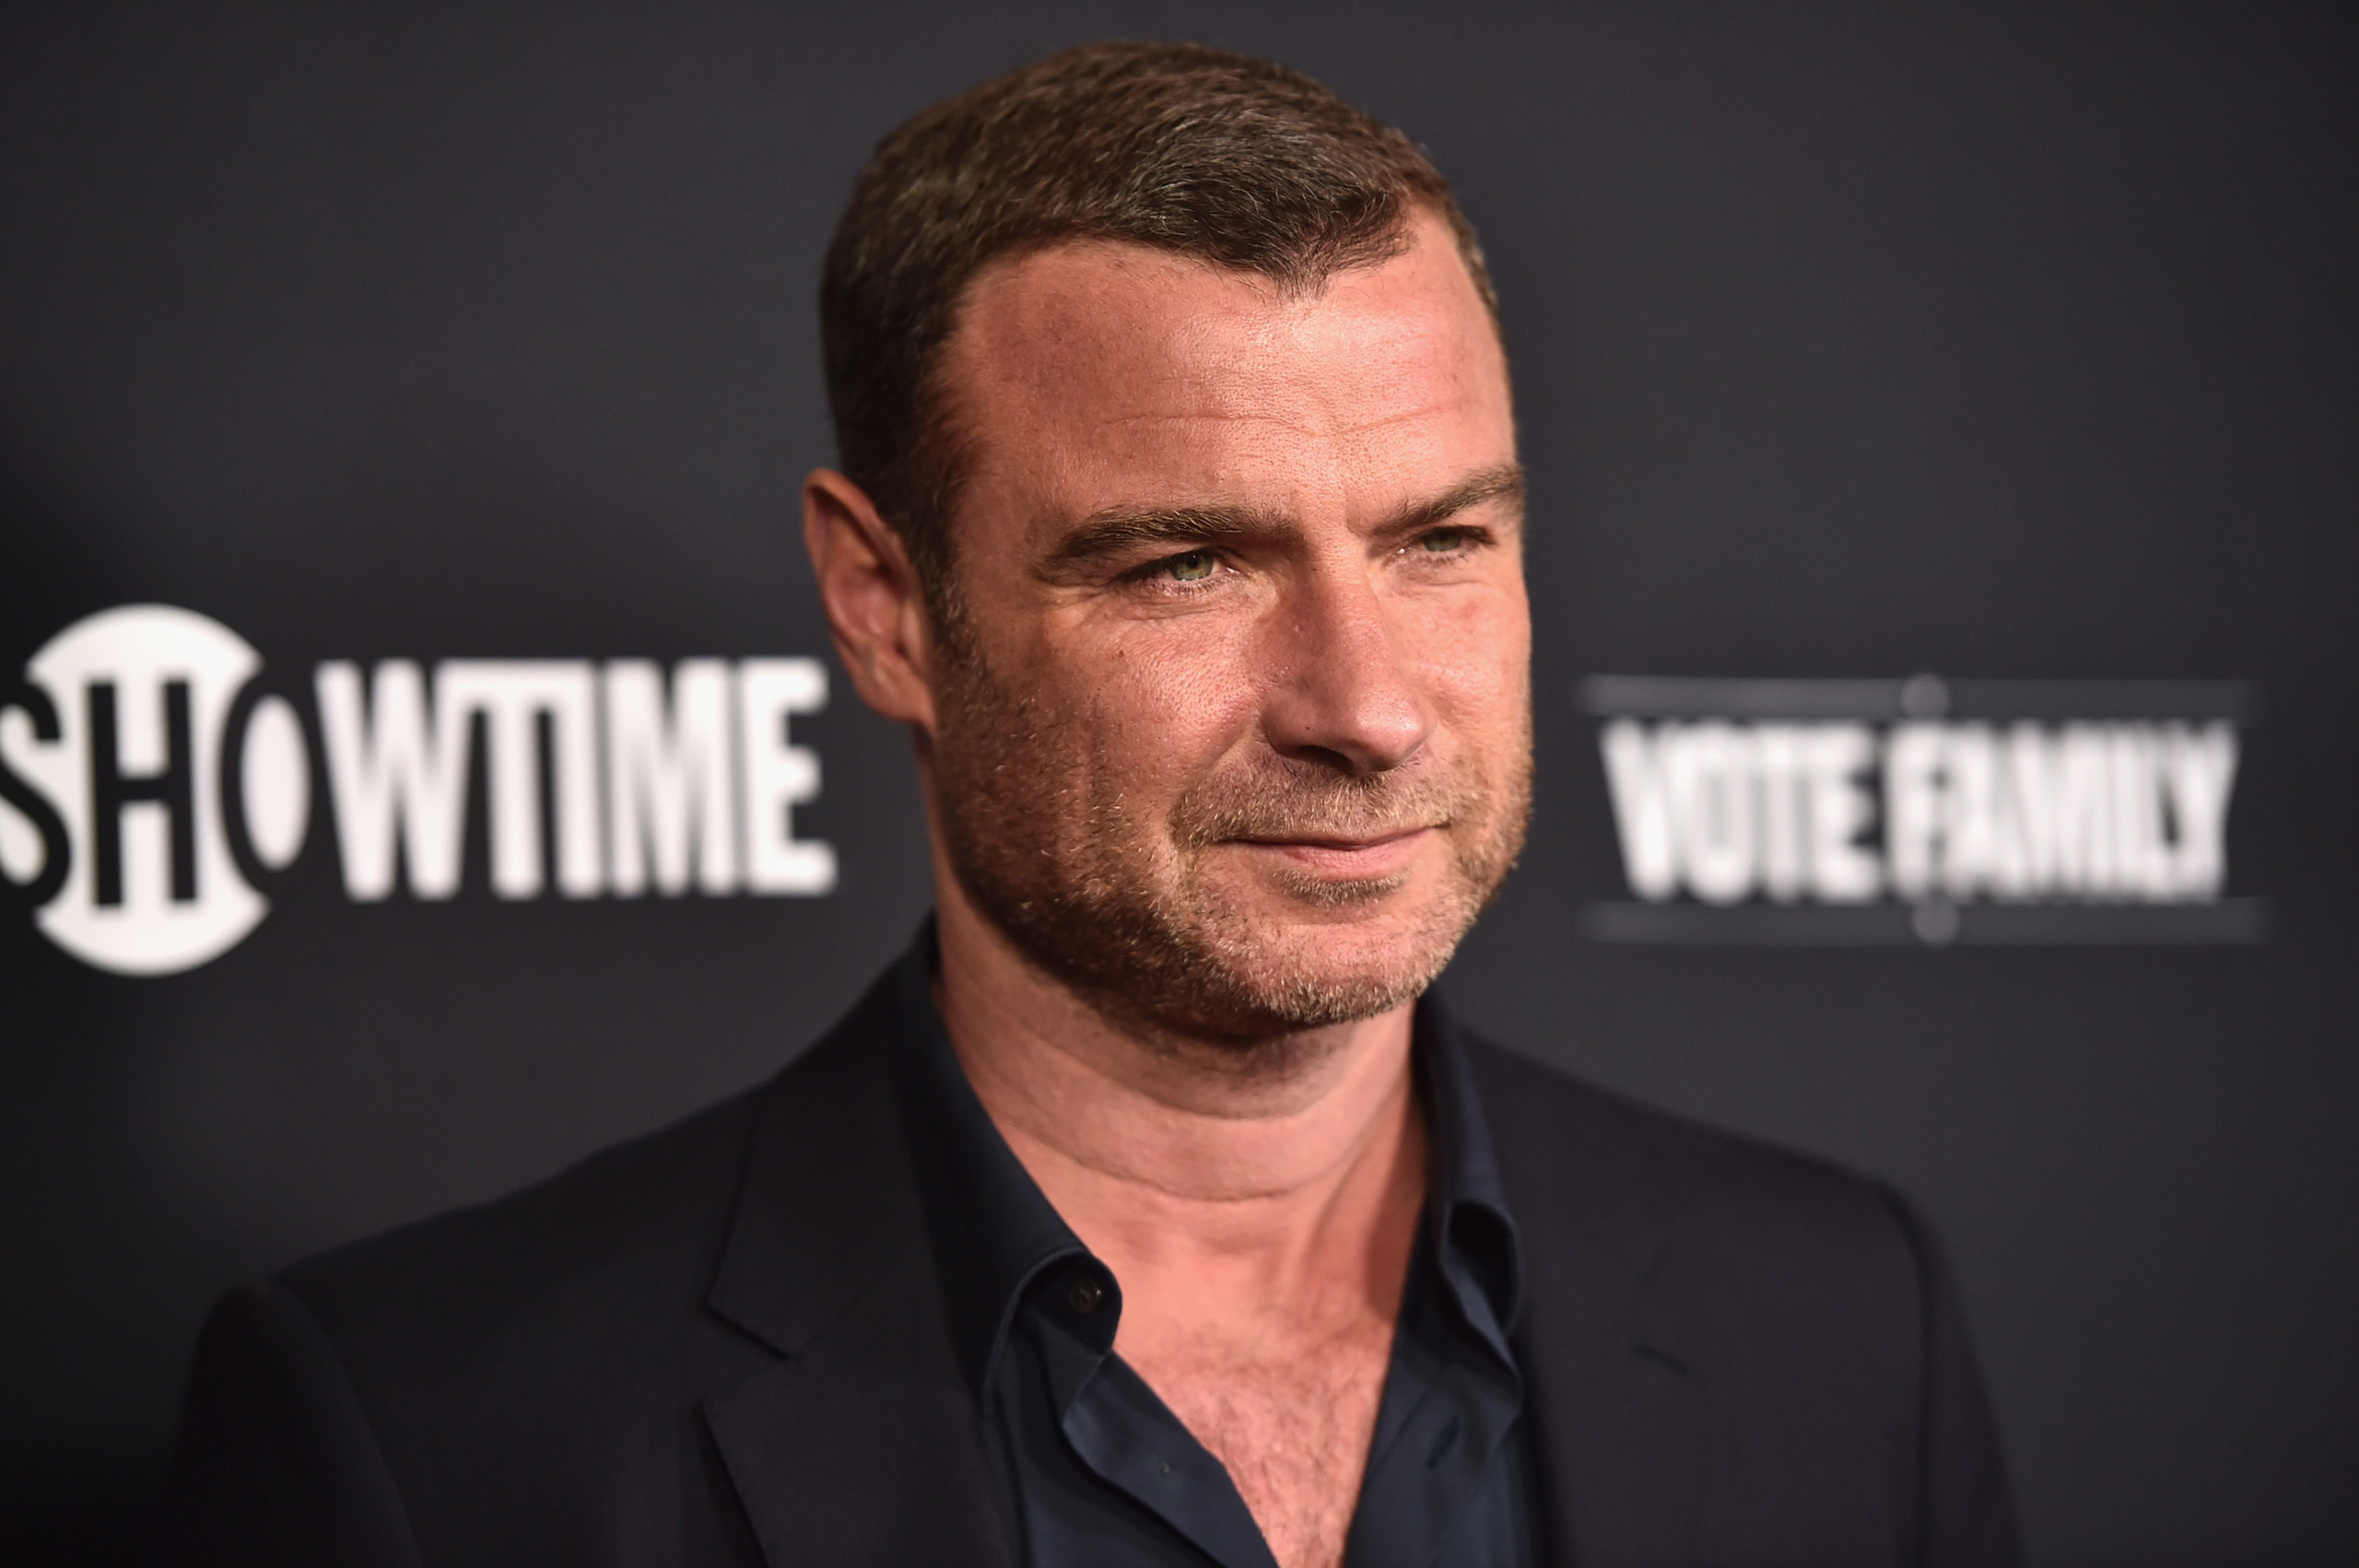 Liev Schreiber attends the For Your Consideration screening and panel for Showtime's 'Ray Donovan' at Paramount Theatre in Hollywood on April 25, 2016.